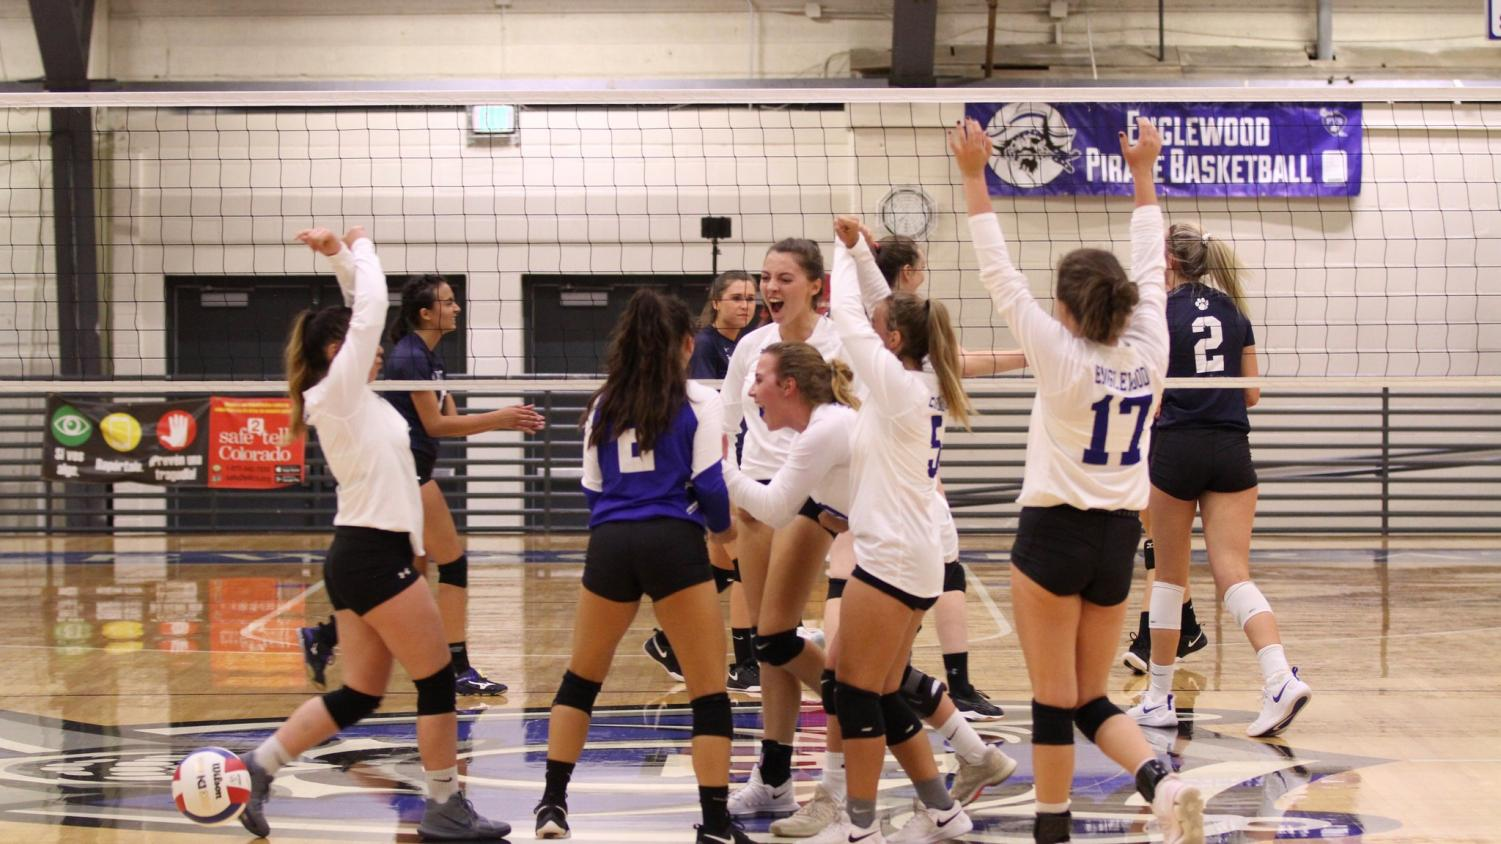 Hainey+is+the+setter+for+the+varsity+team.+